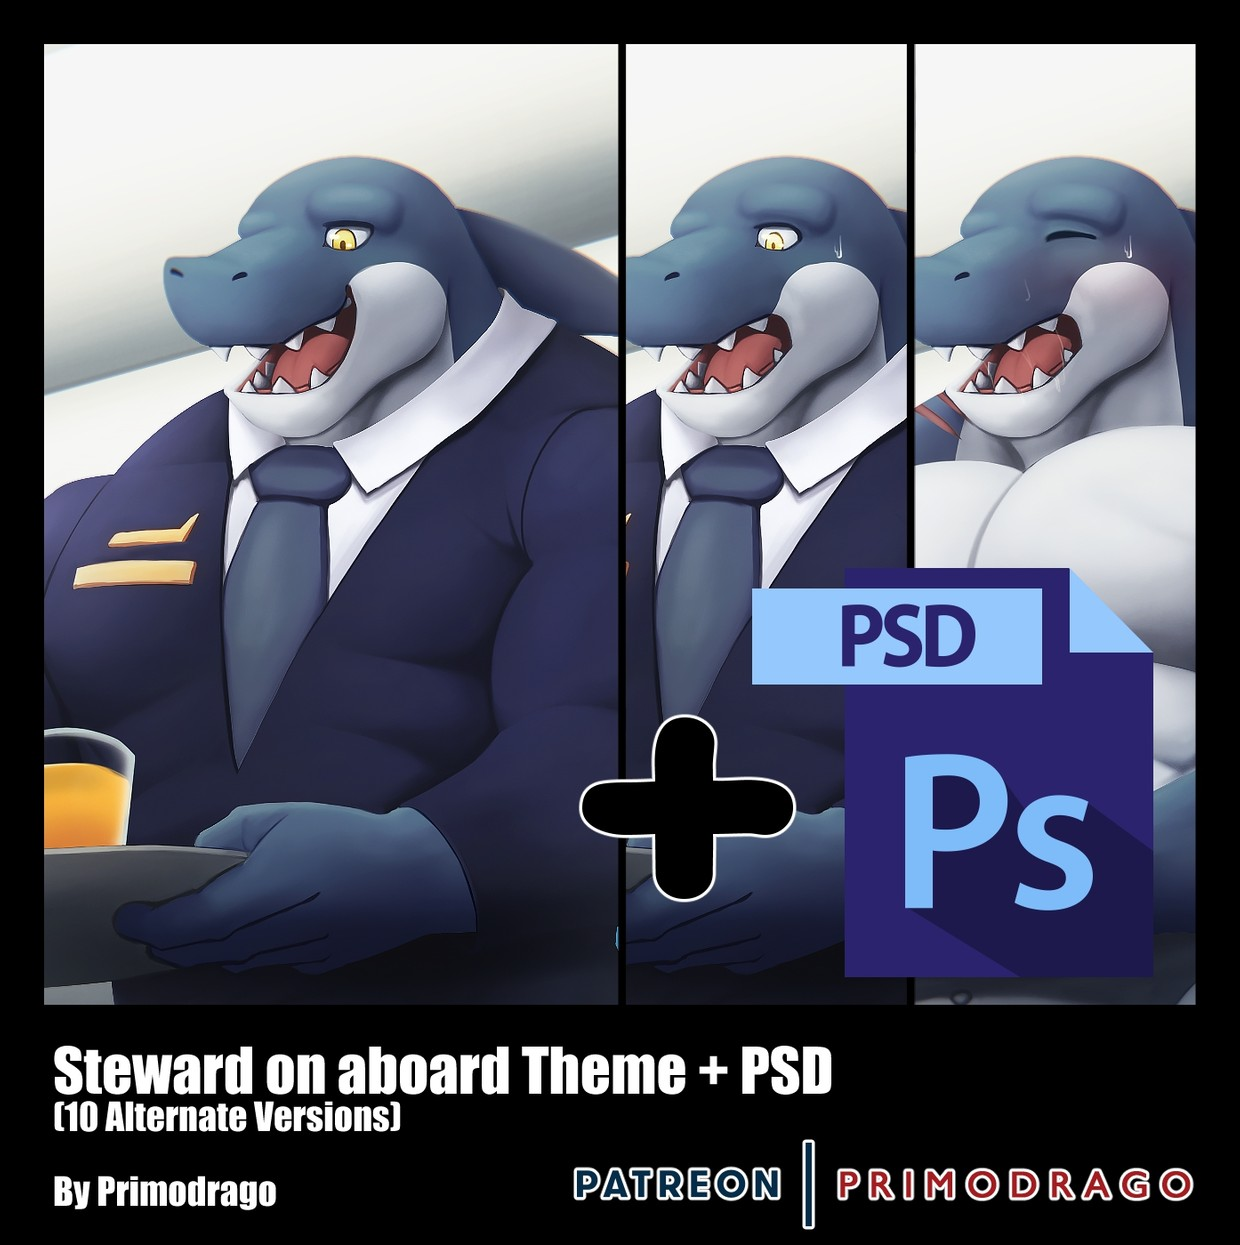 Steward on aboard Theme + PSD File